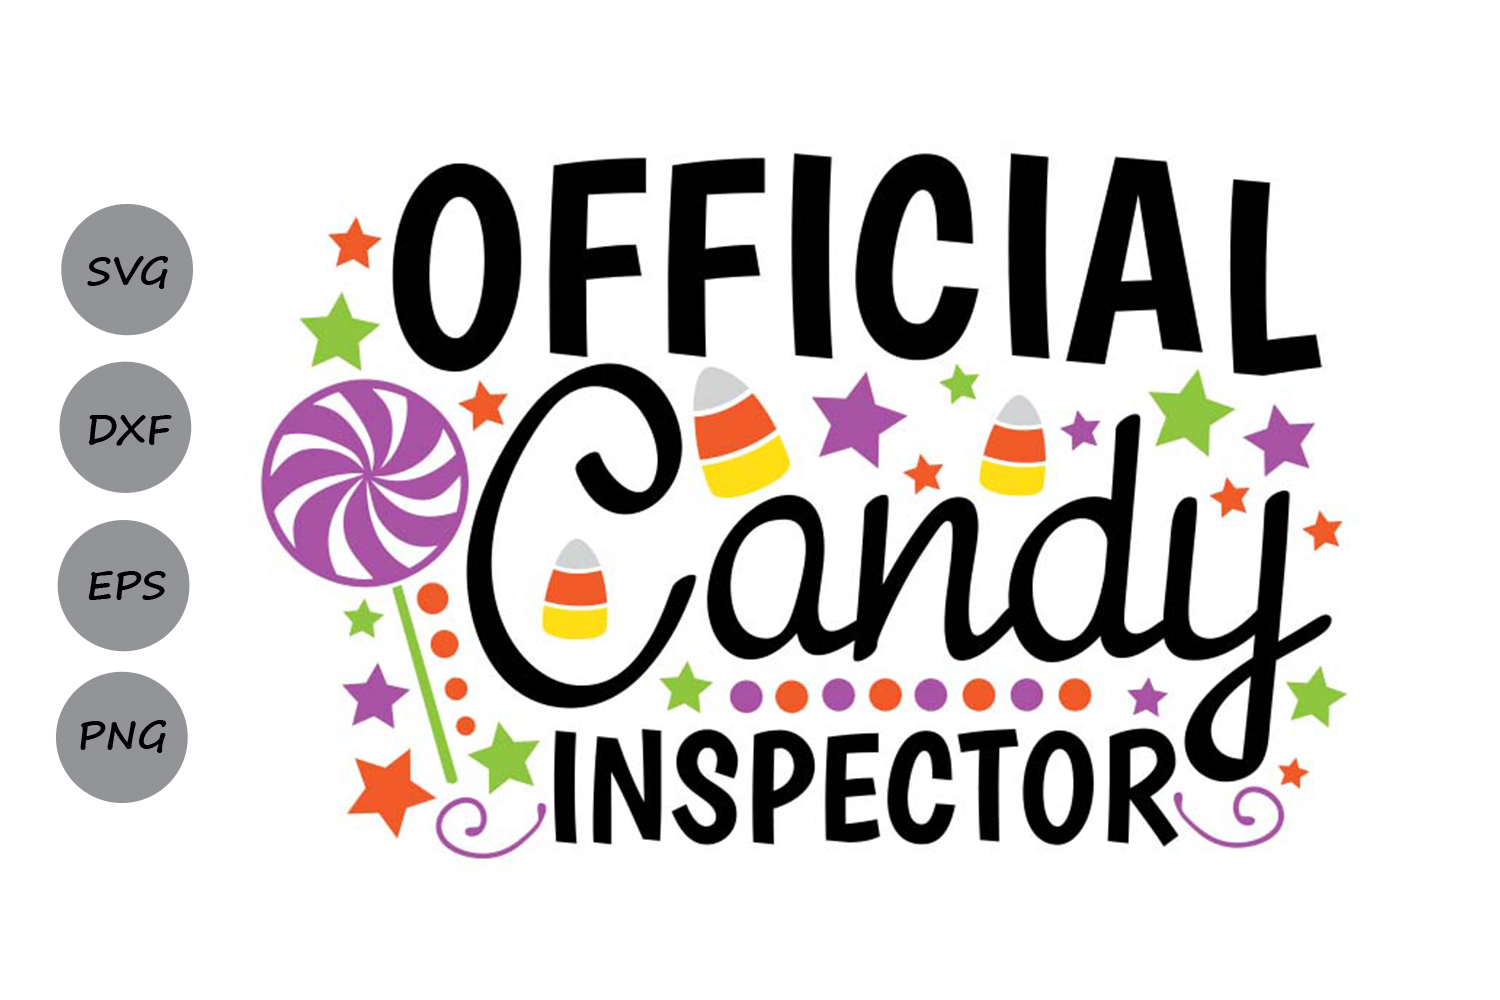 Download Free Official Candy Inspector Svg Grafik Von Cosmosfineart for Cricut Explore, Silhouette and other cutting machines.